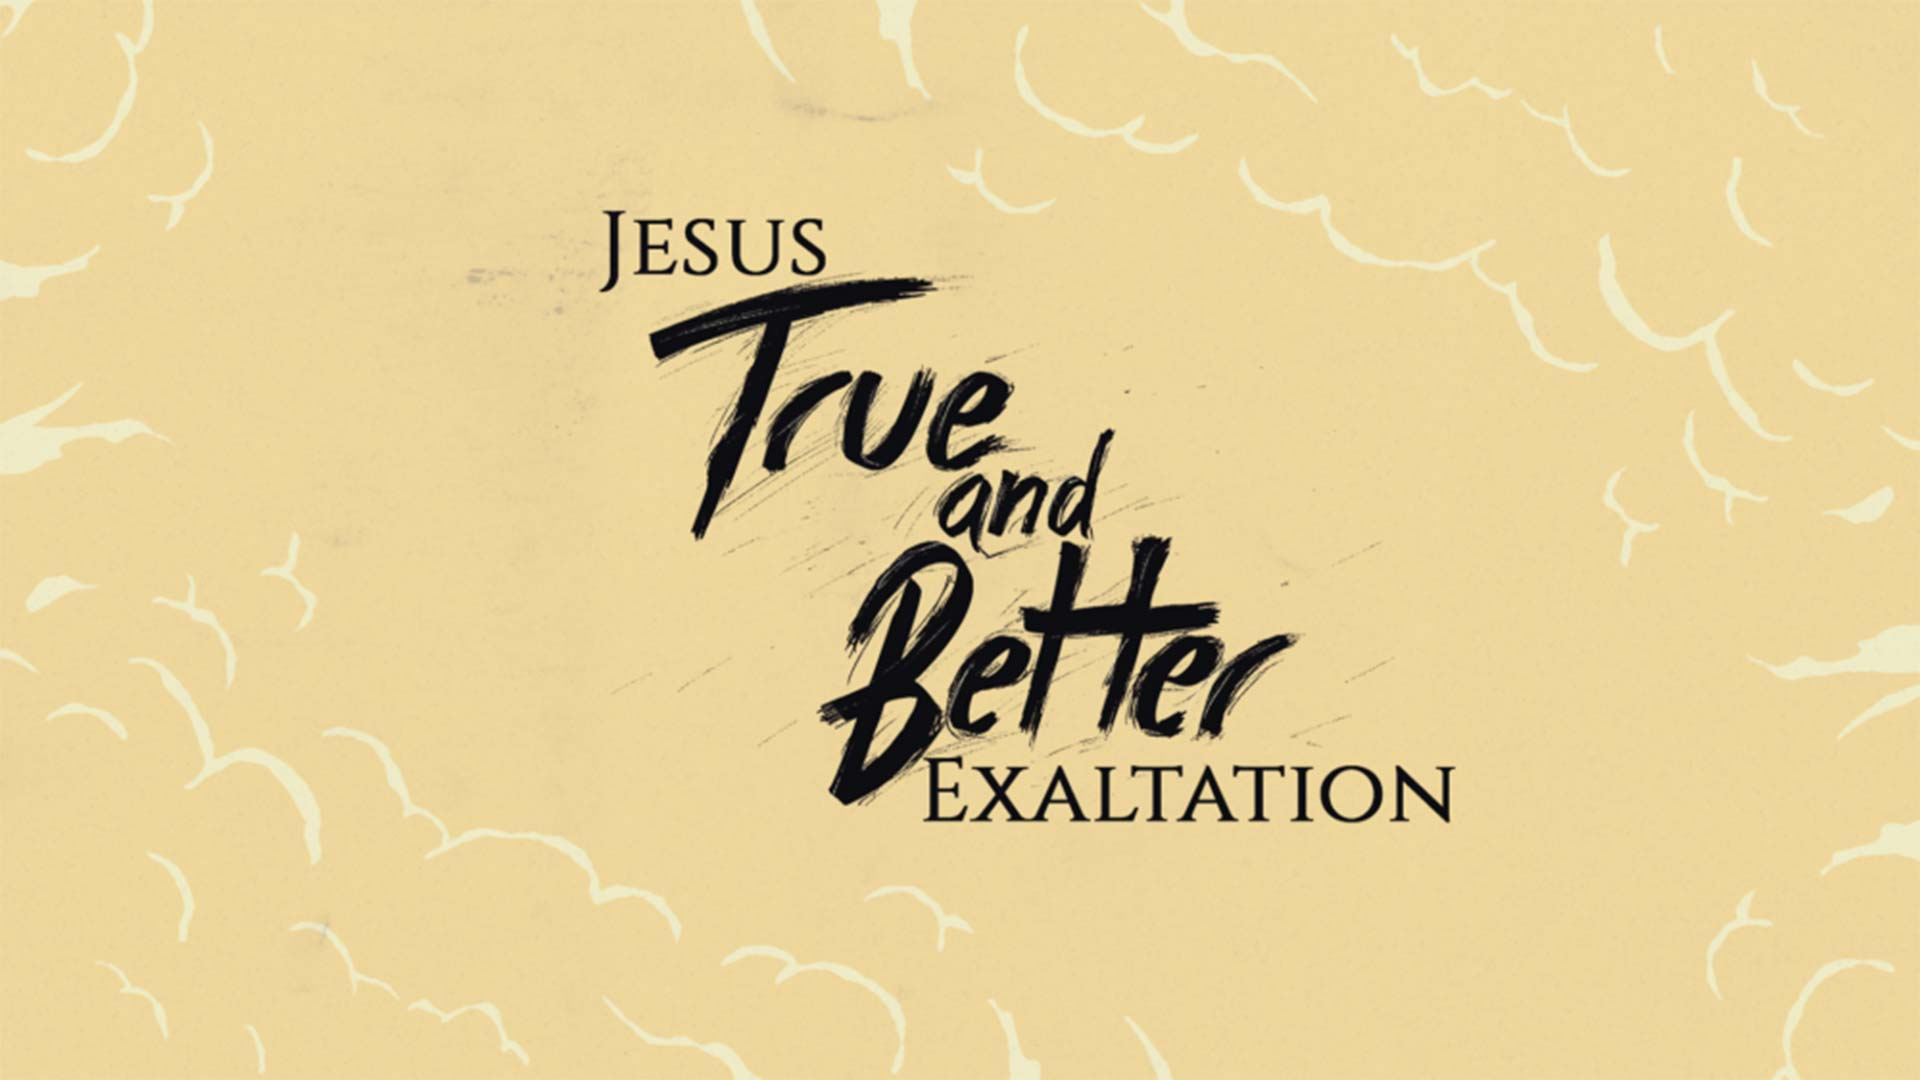 Jesus: True and Better Exaltation Image